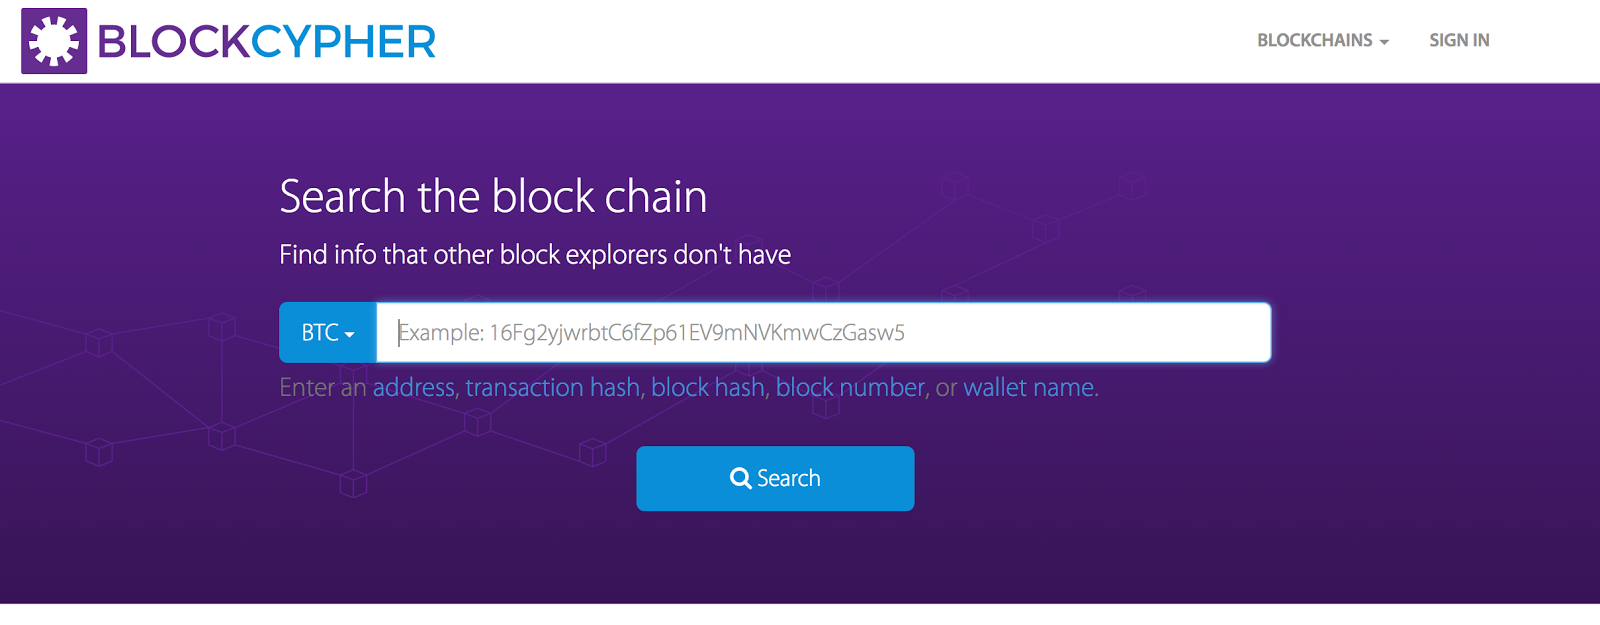 How to get your transaction id eth btc tenx medium choose btc in the blue dropdown menu paste your address you send from and click search ccuart Gallery